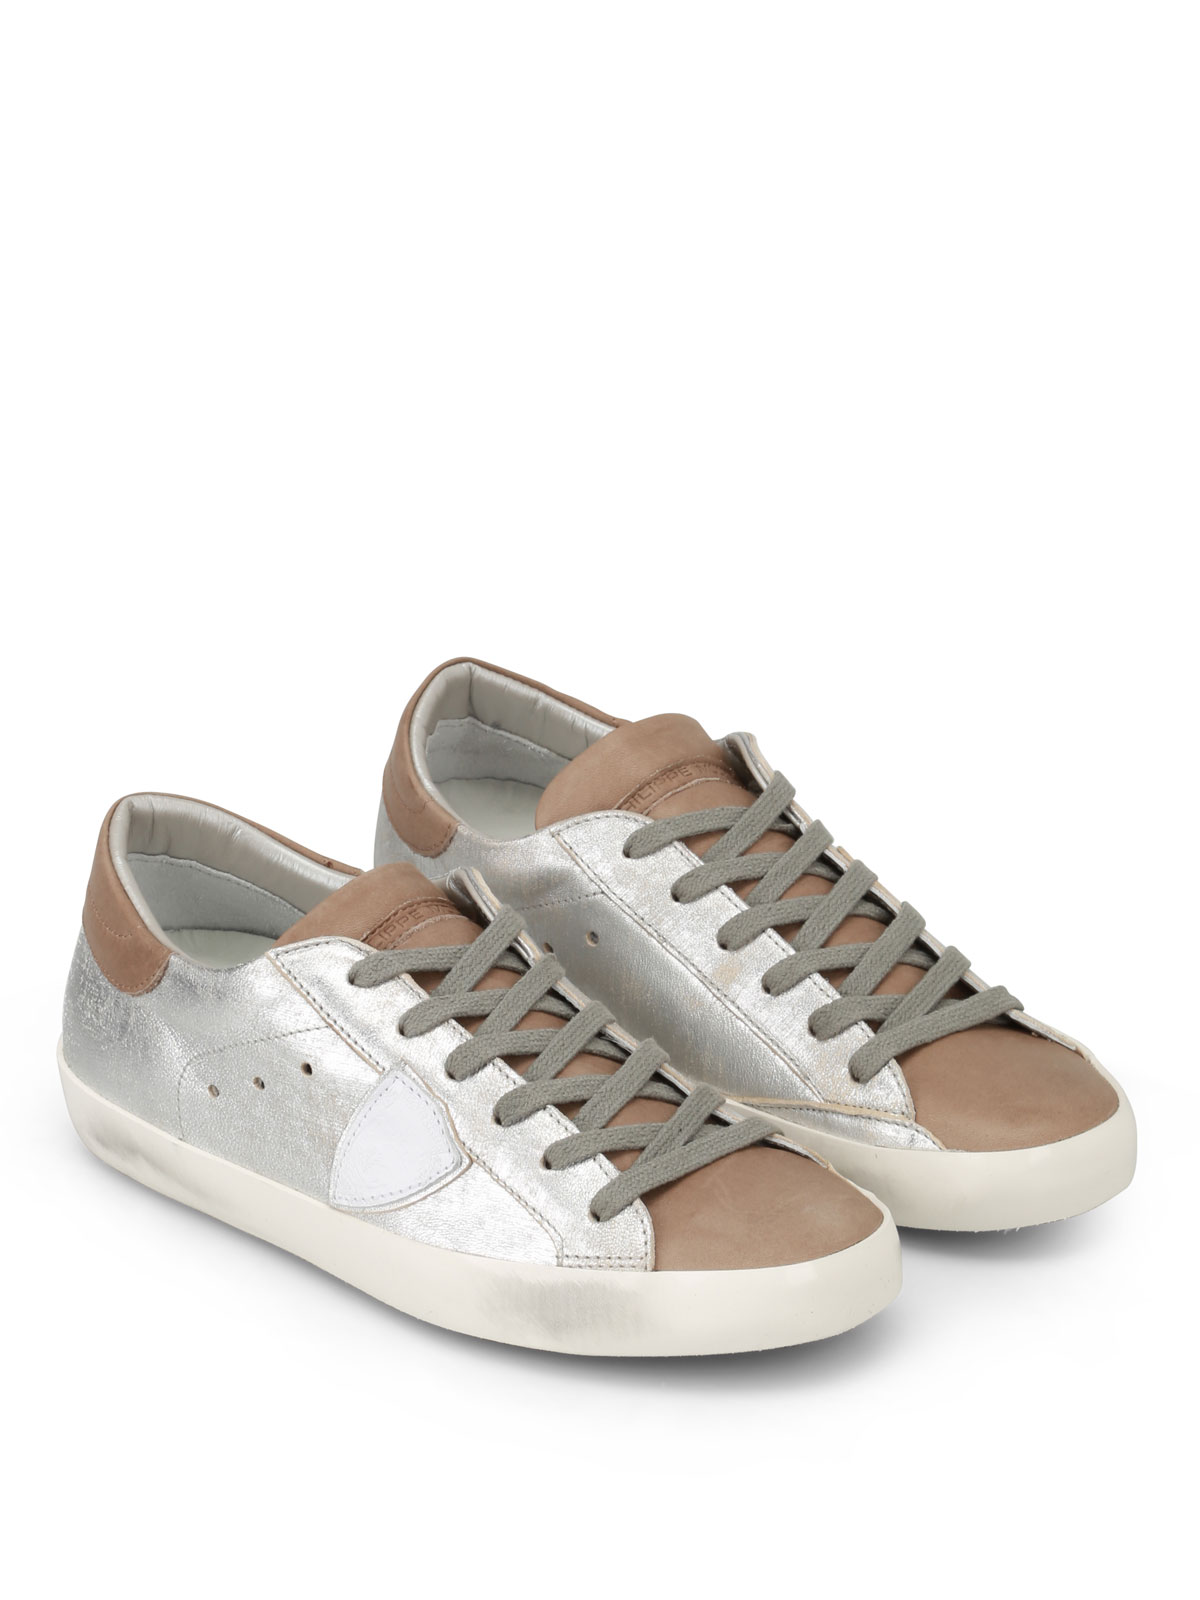 Cheap Sale Supply Paris metallic sneakers Philippe Model Cheap Best Store To Get 4md223miVs